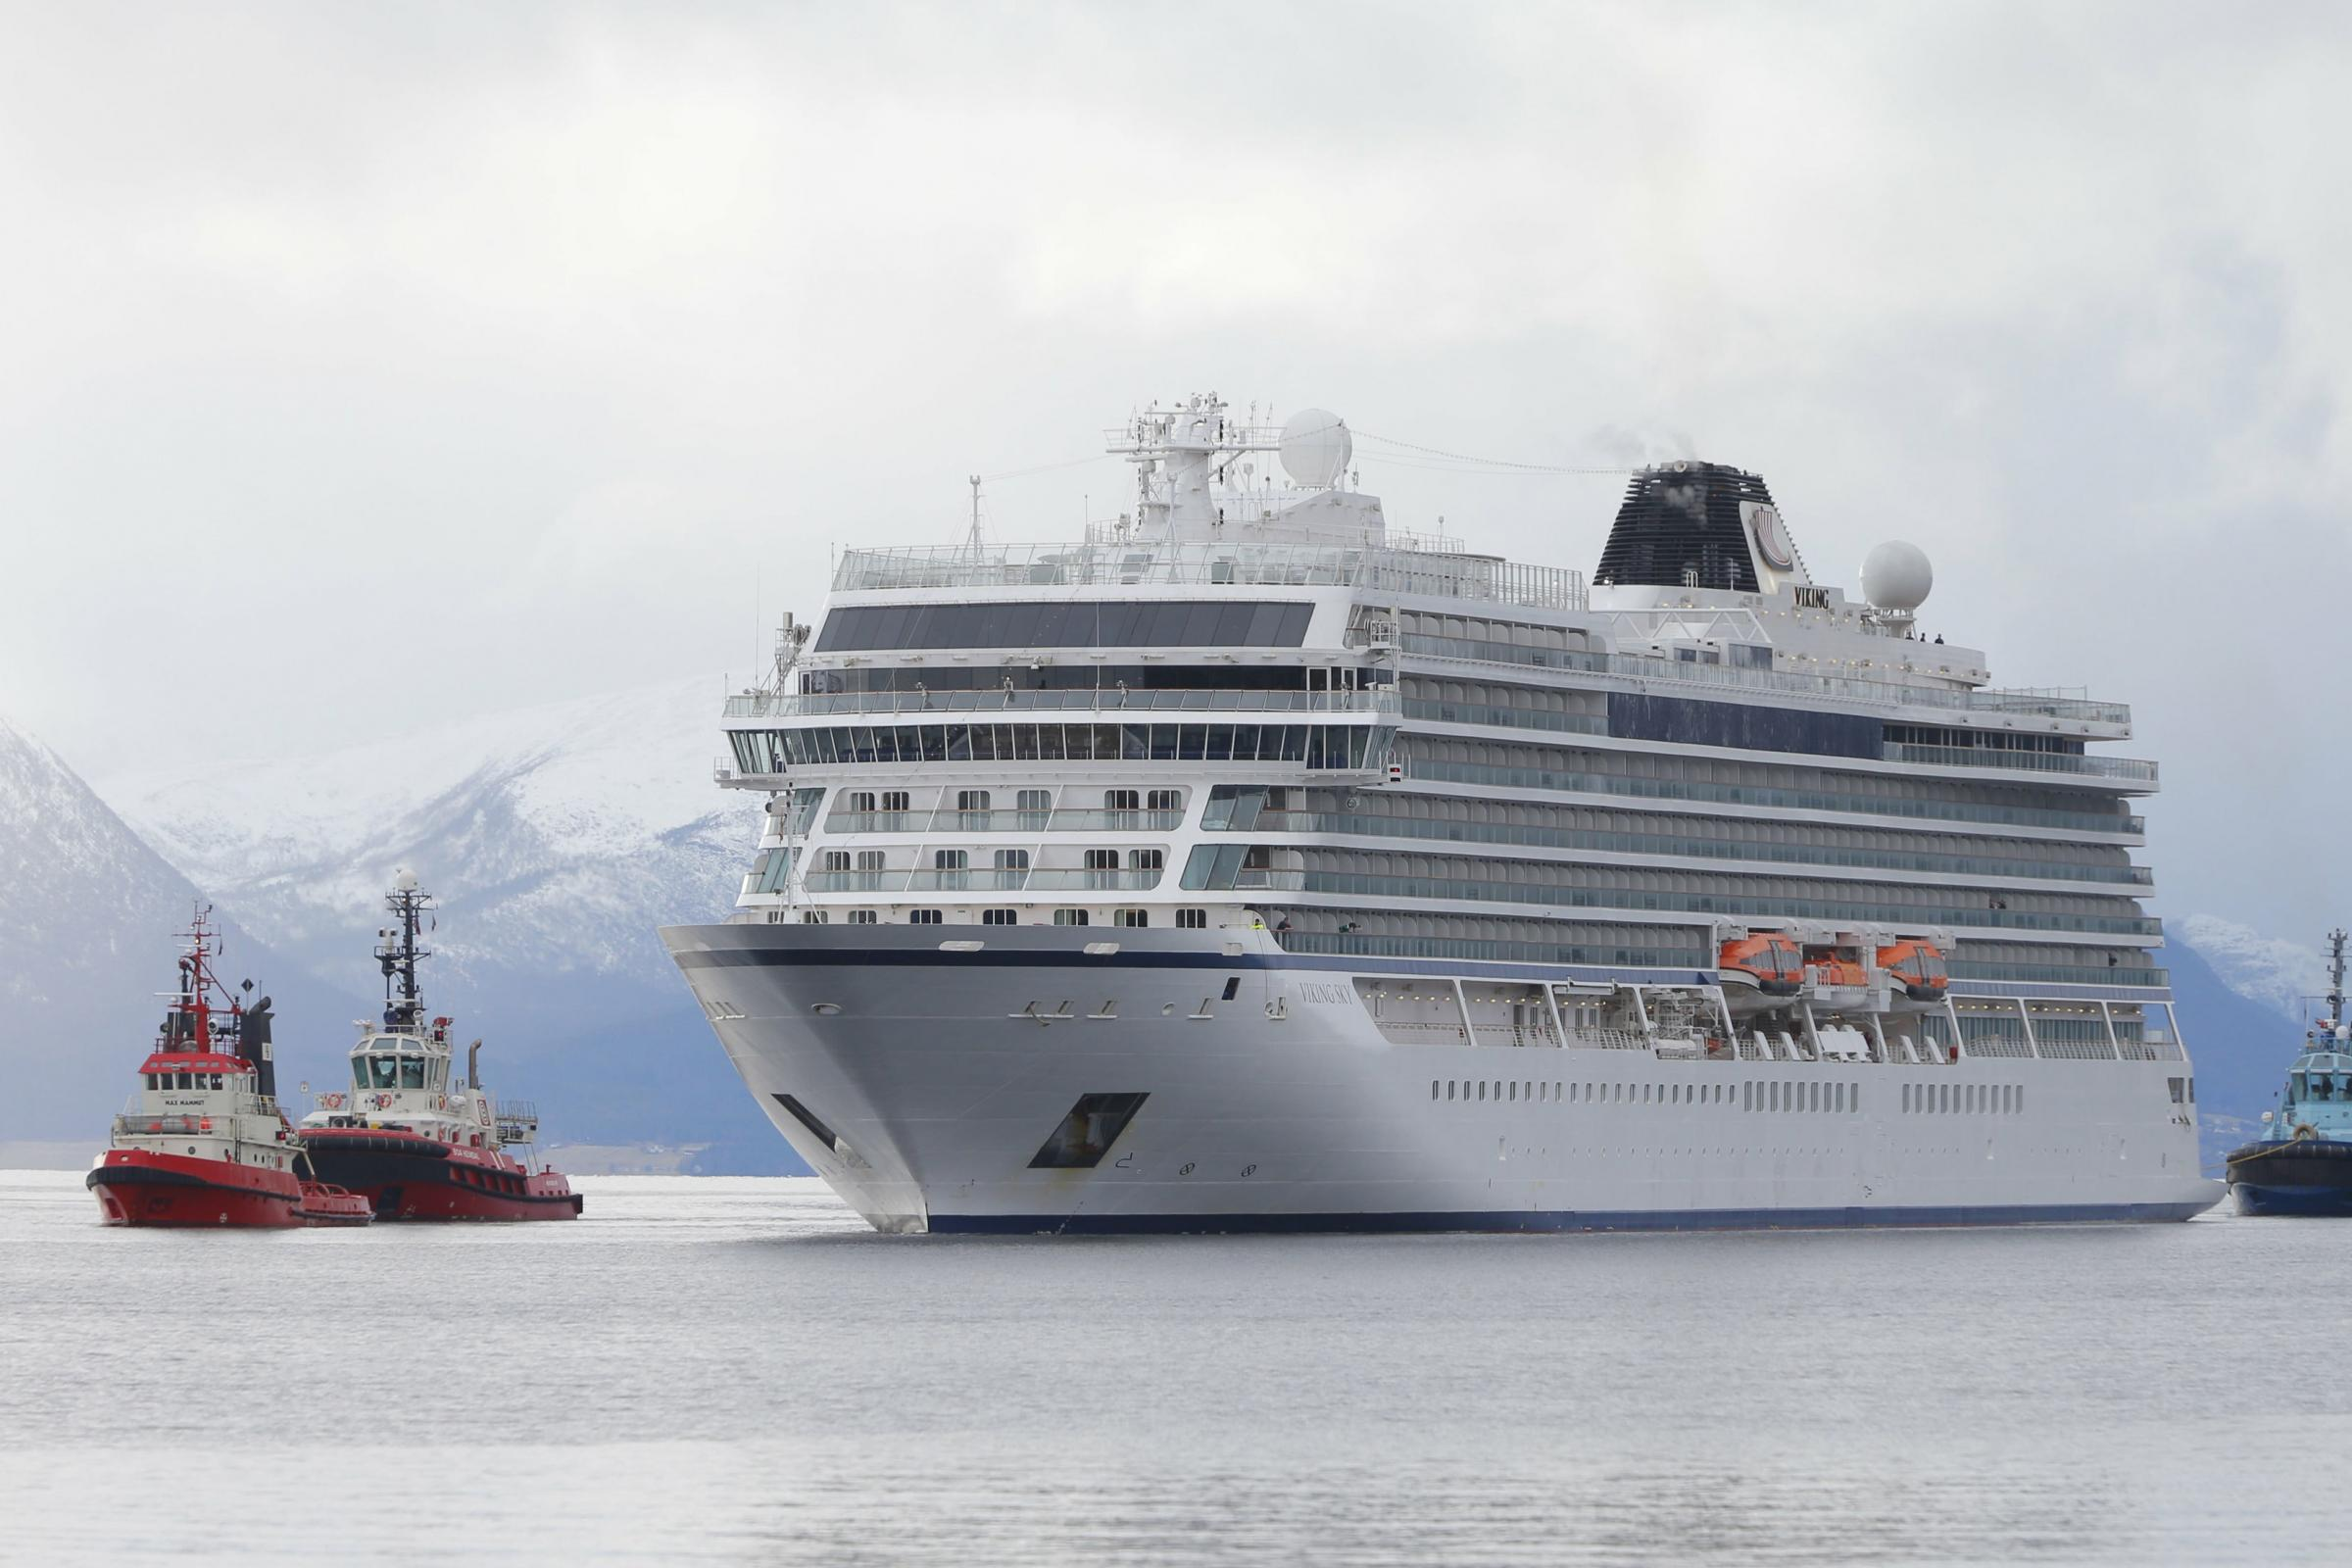 The cruise ship Viking Sky arrives at port off Molde, Norway